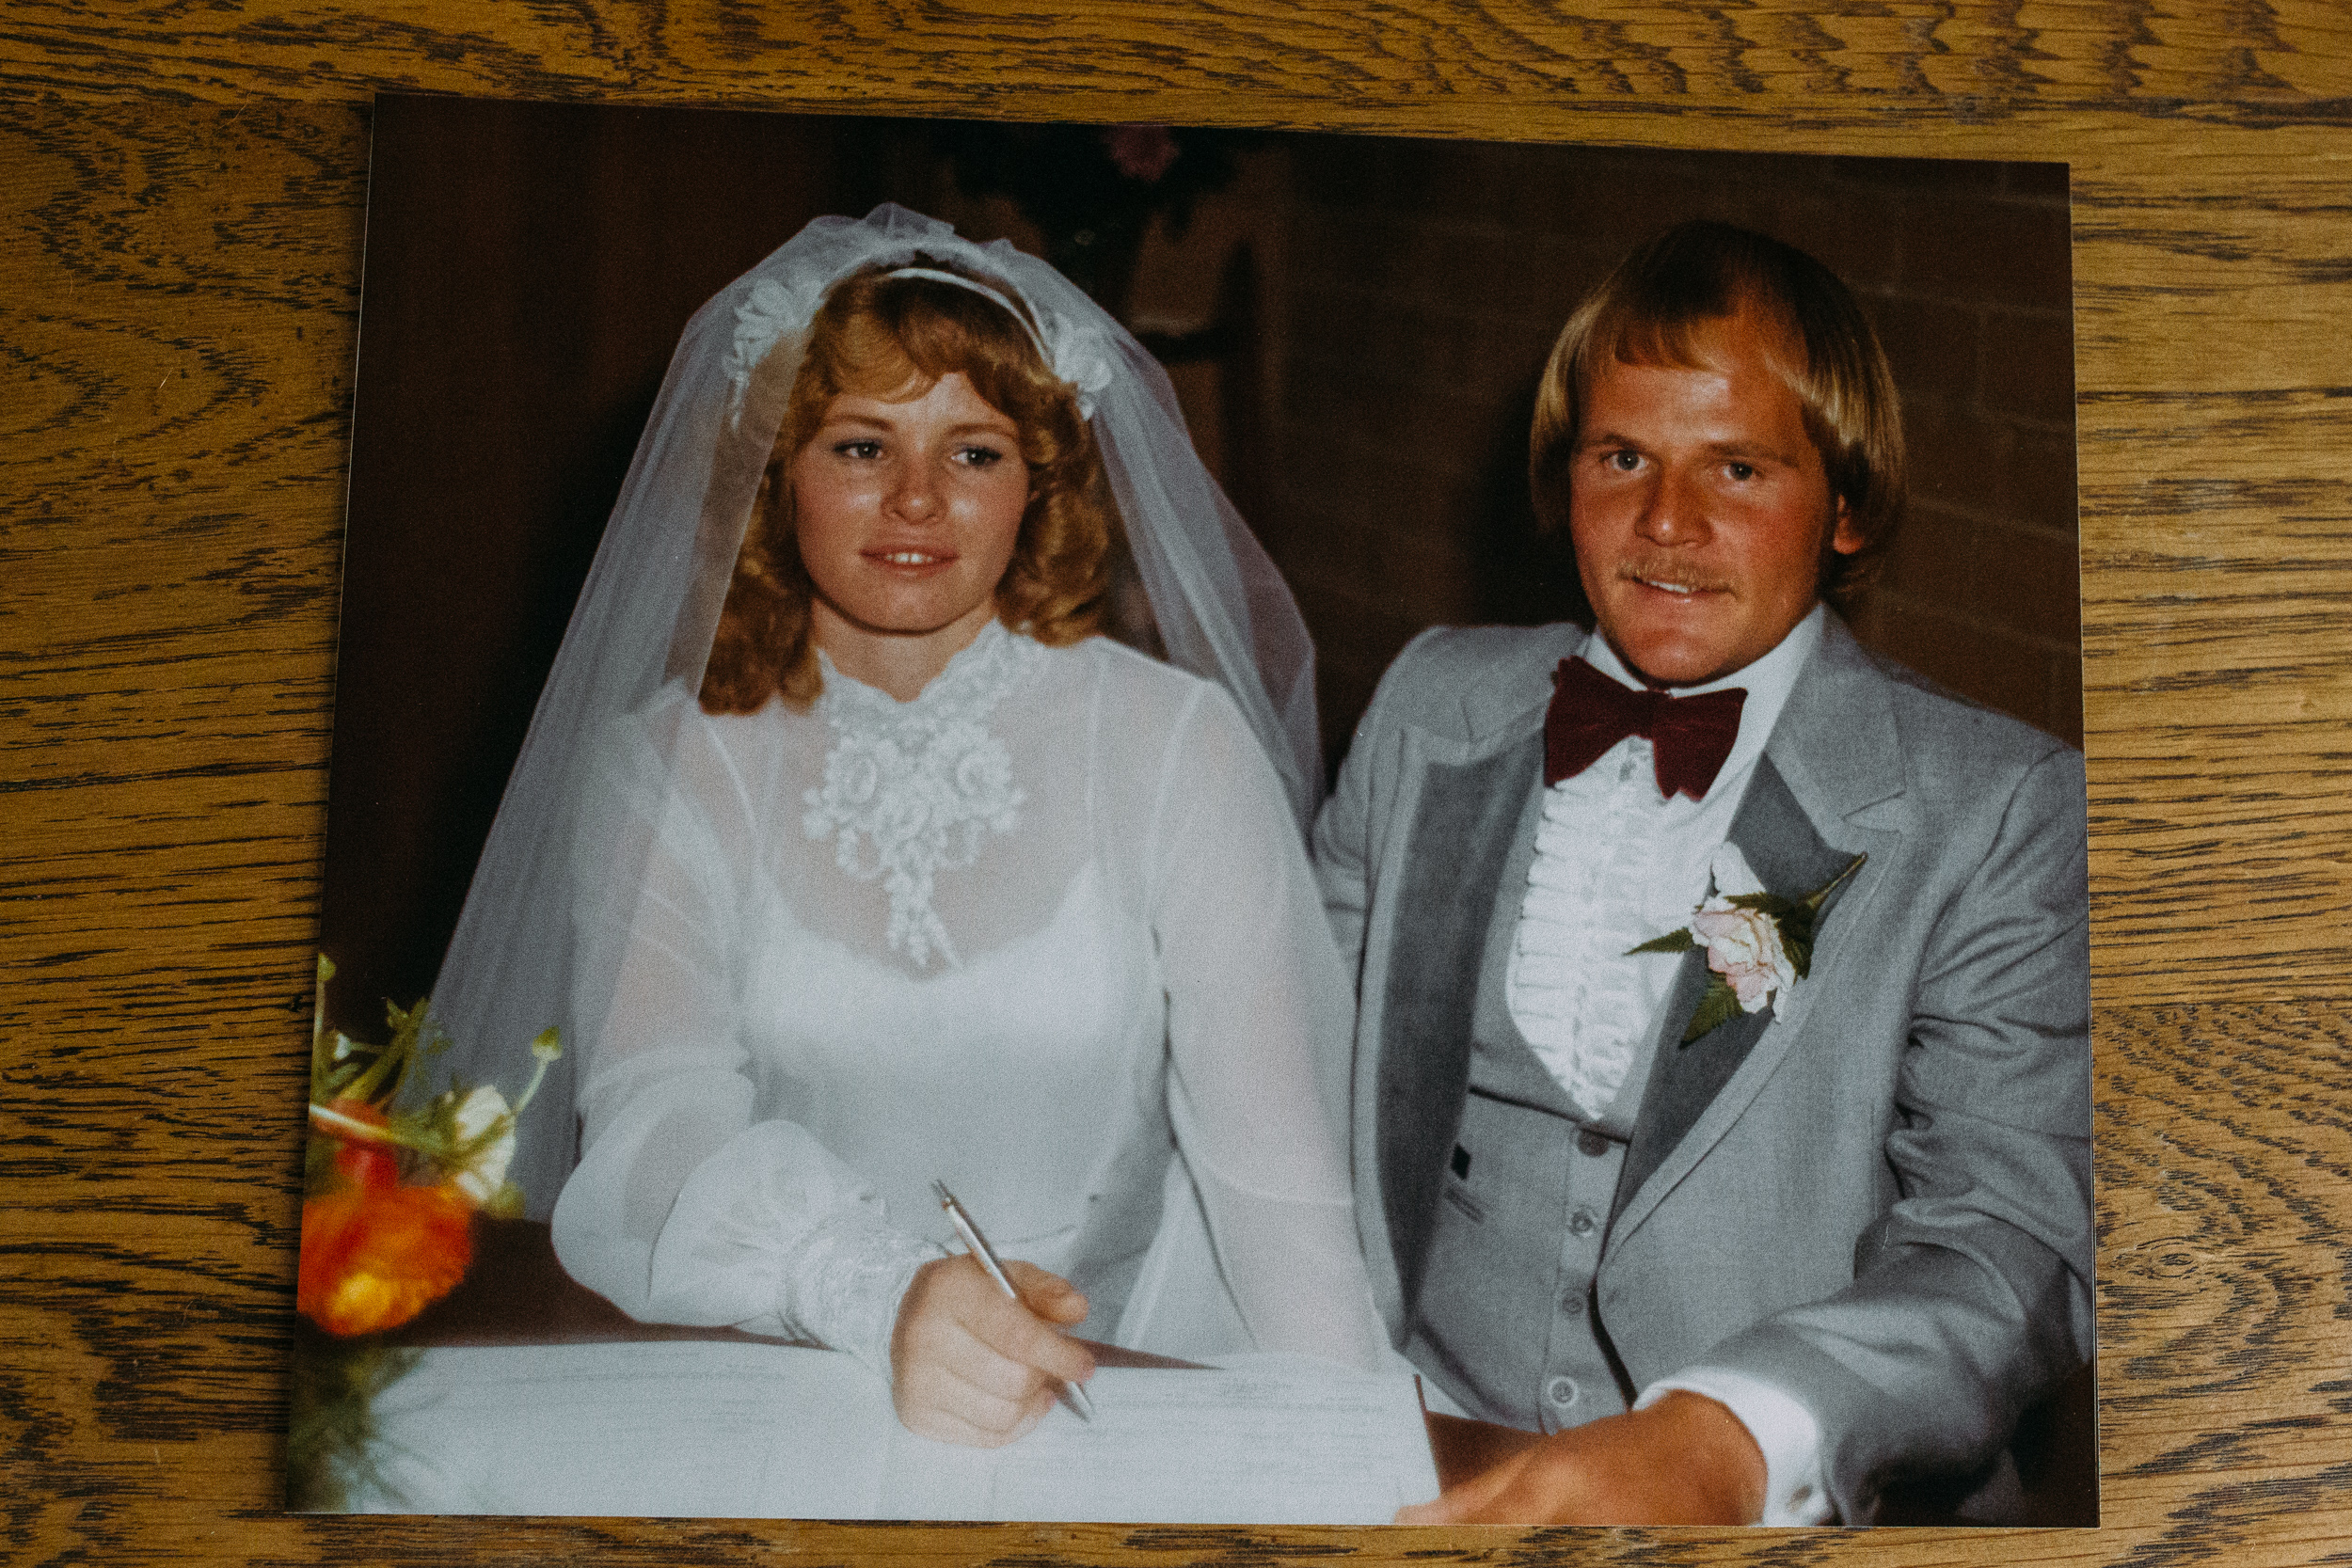 Sally and her husband Peter Hall on their wedding day, 1980, Image: supplied by Sally Hall.